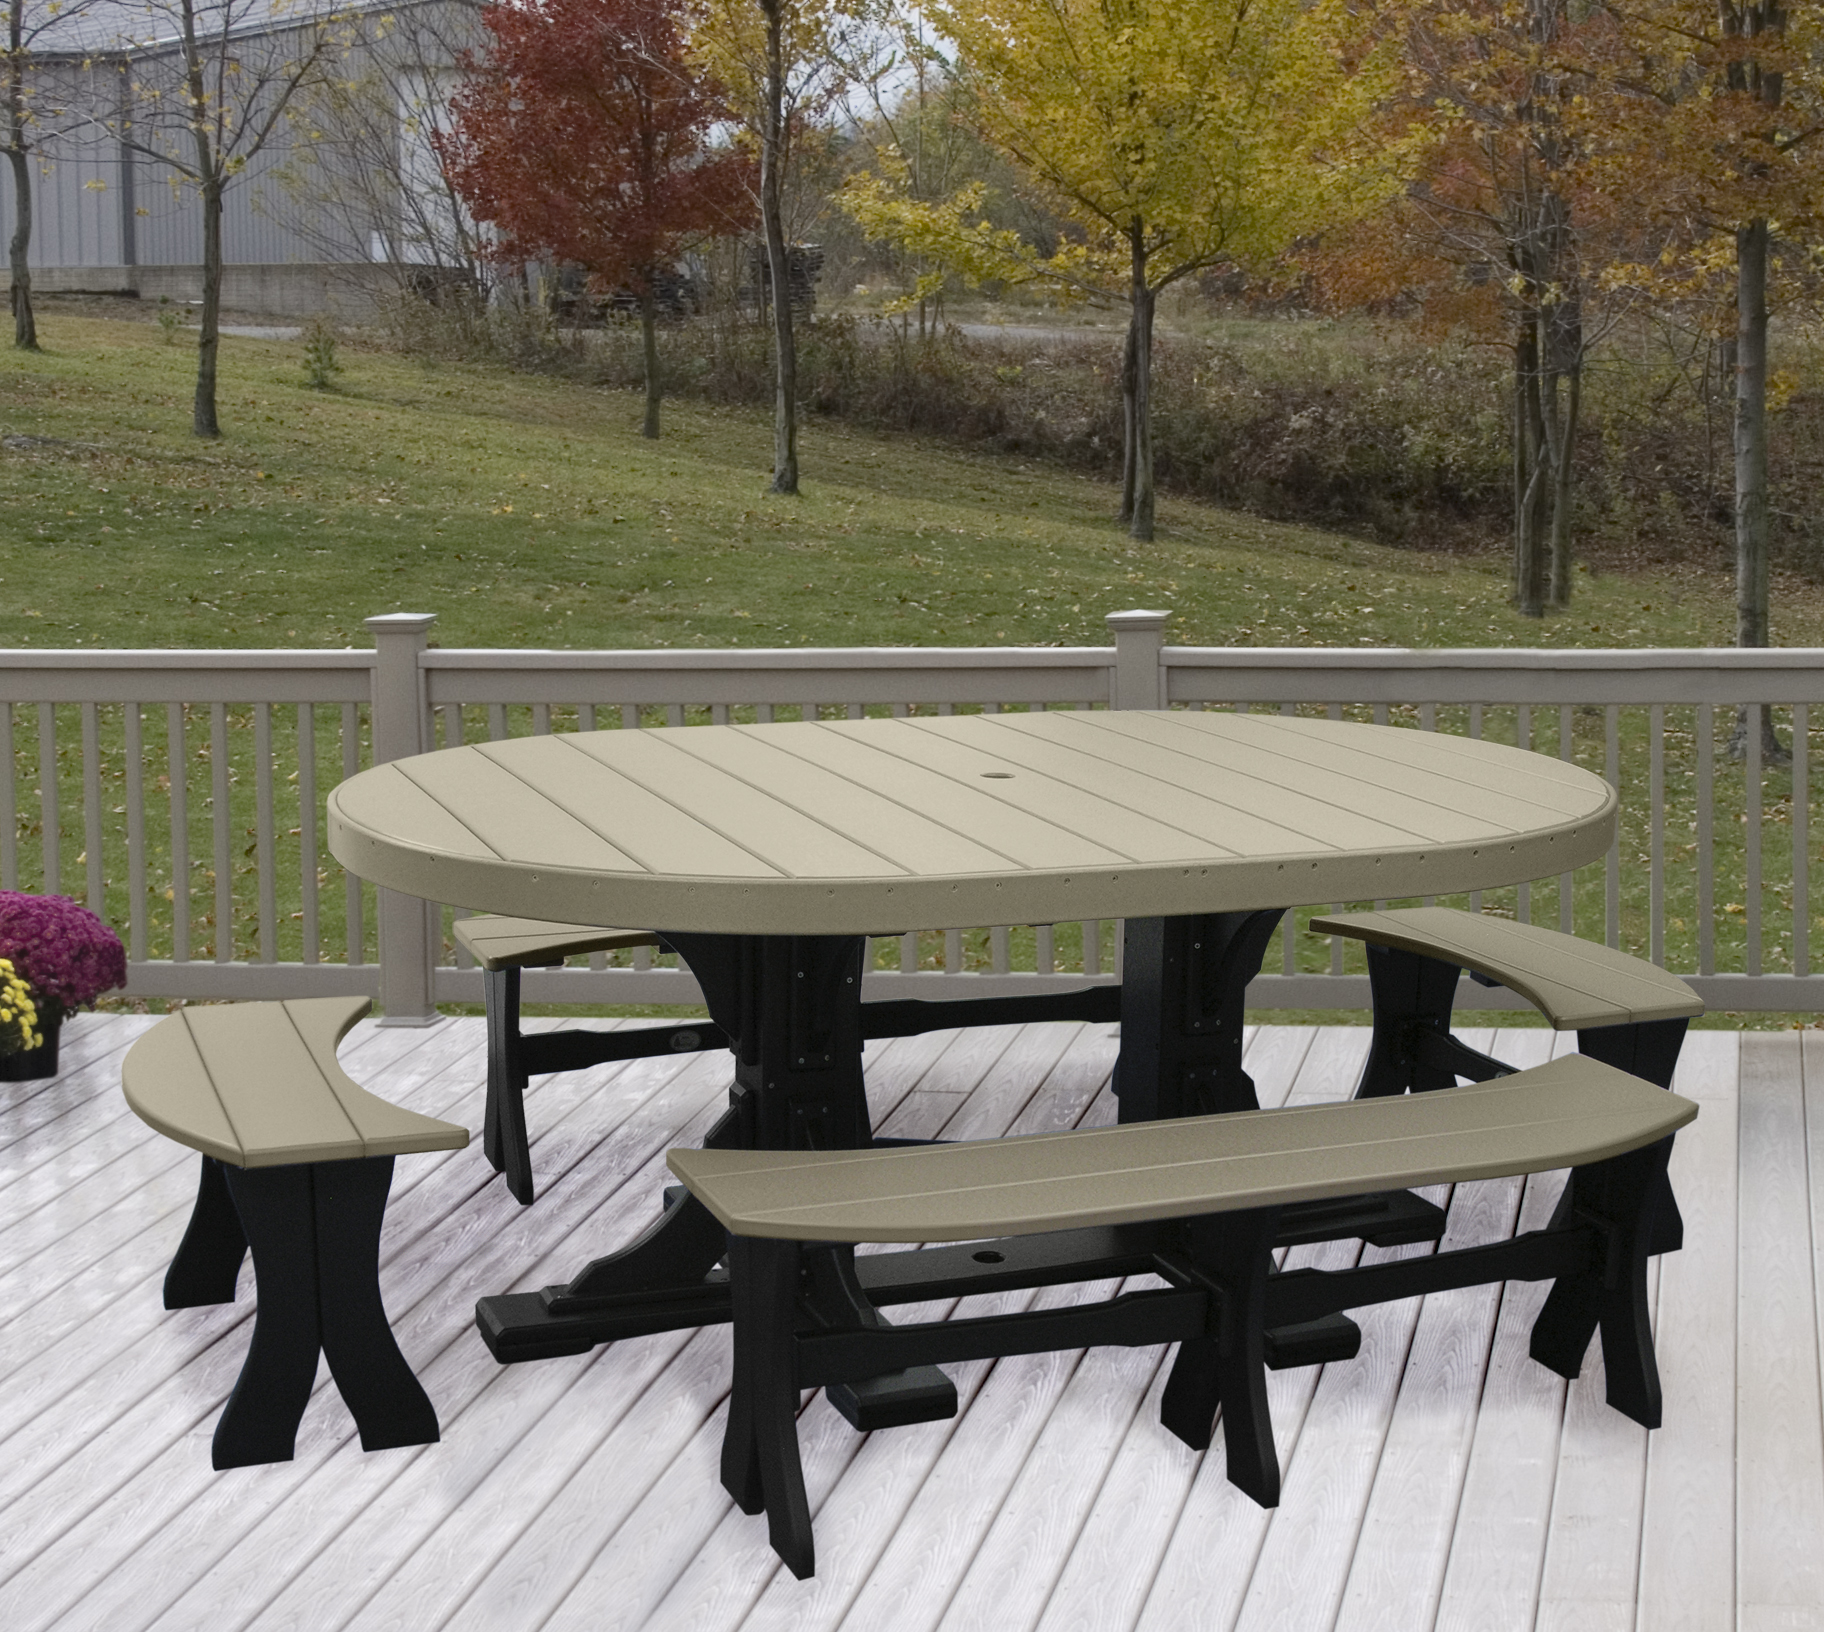 Oval Table 5 Piece Bench Dining Set Recycled Patio